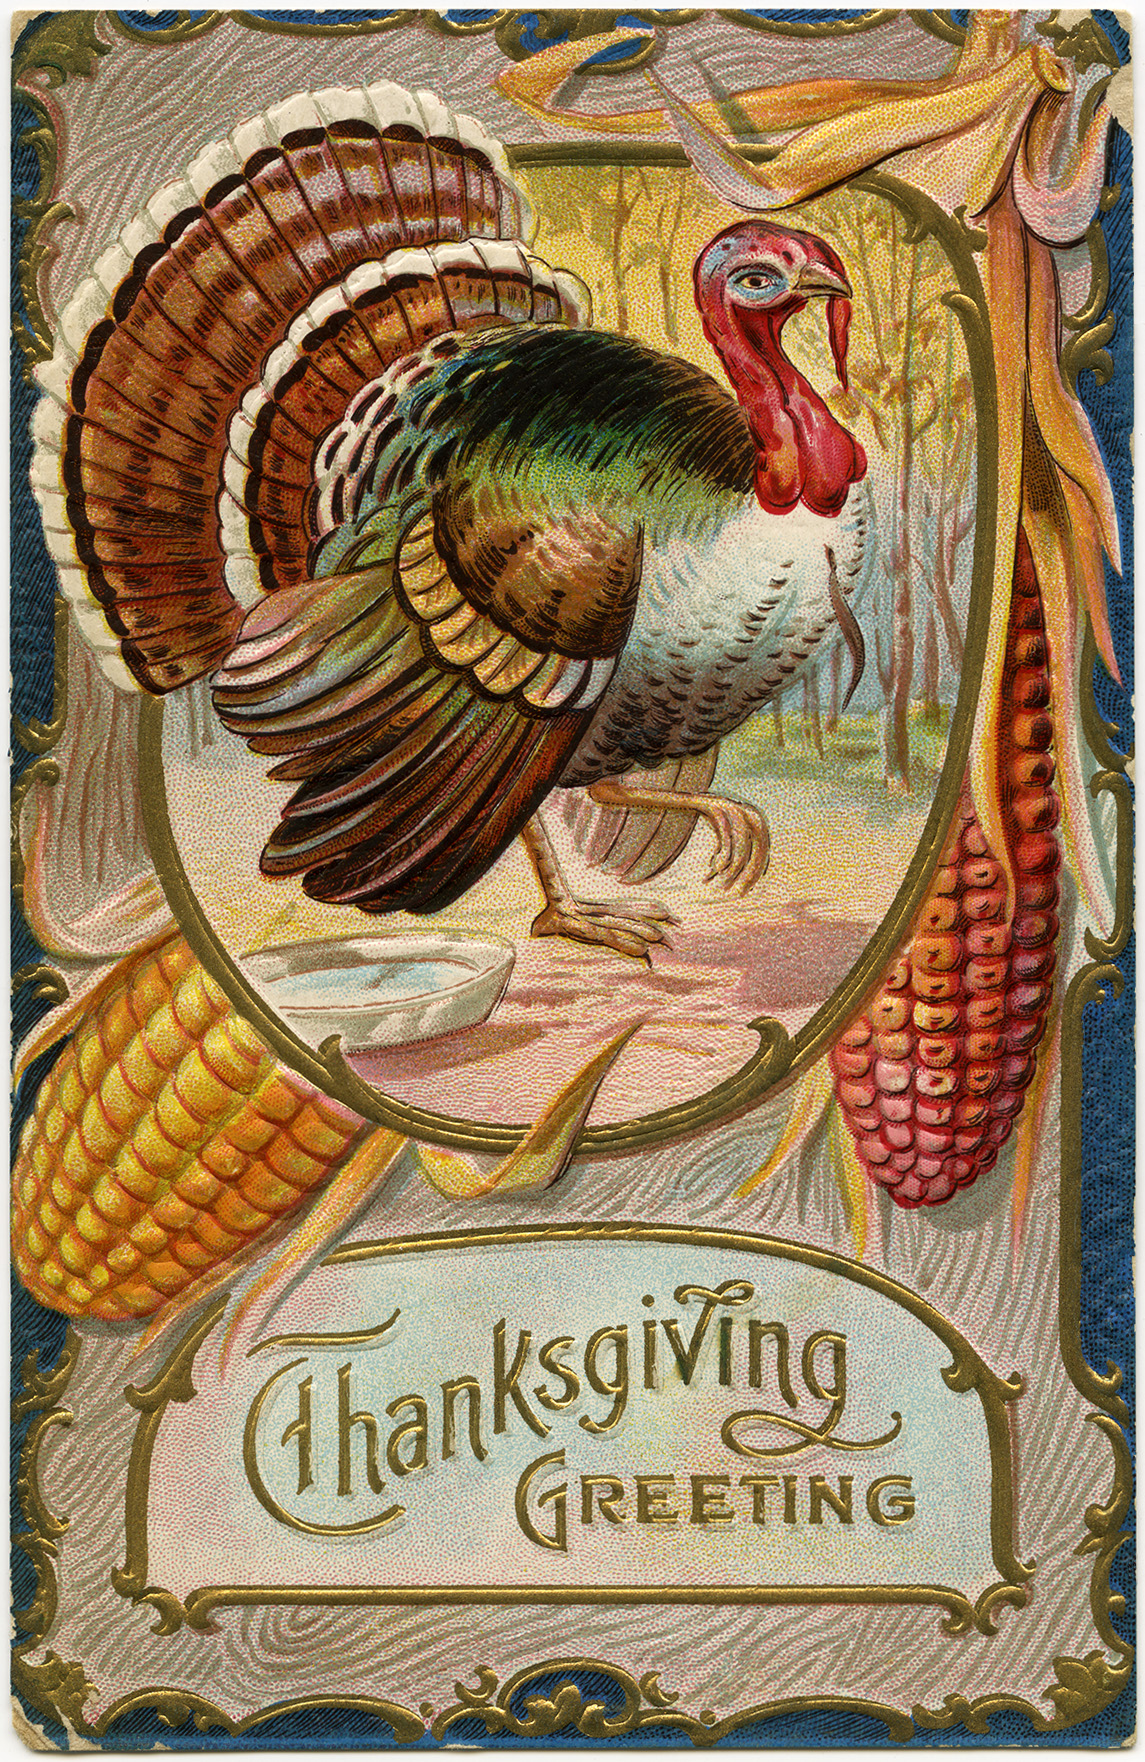 Thanksgiving Greeting Turkey Postcard | Old Design Shop Blog